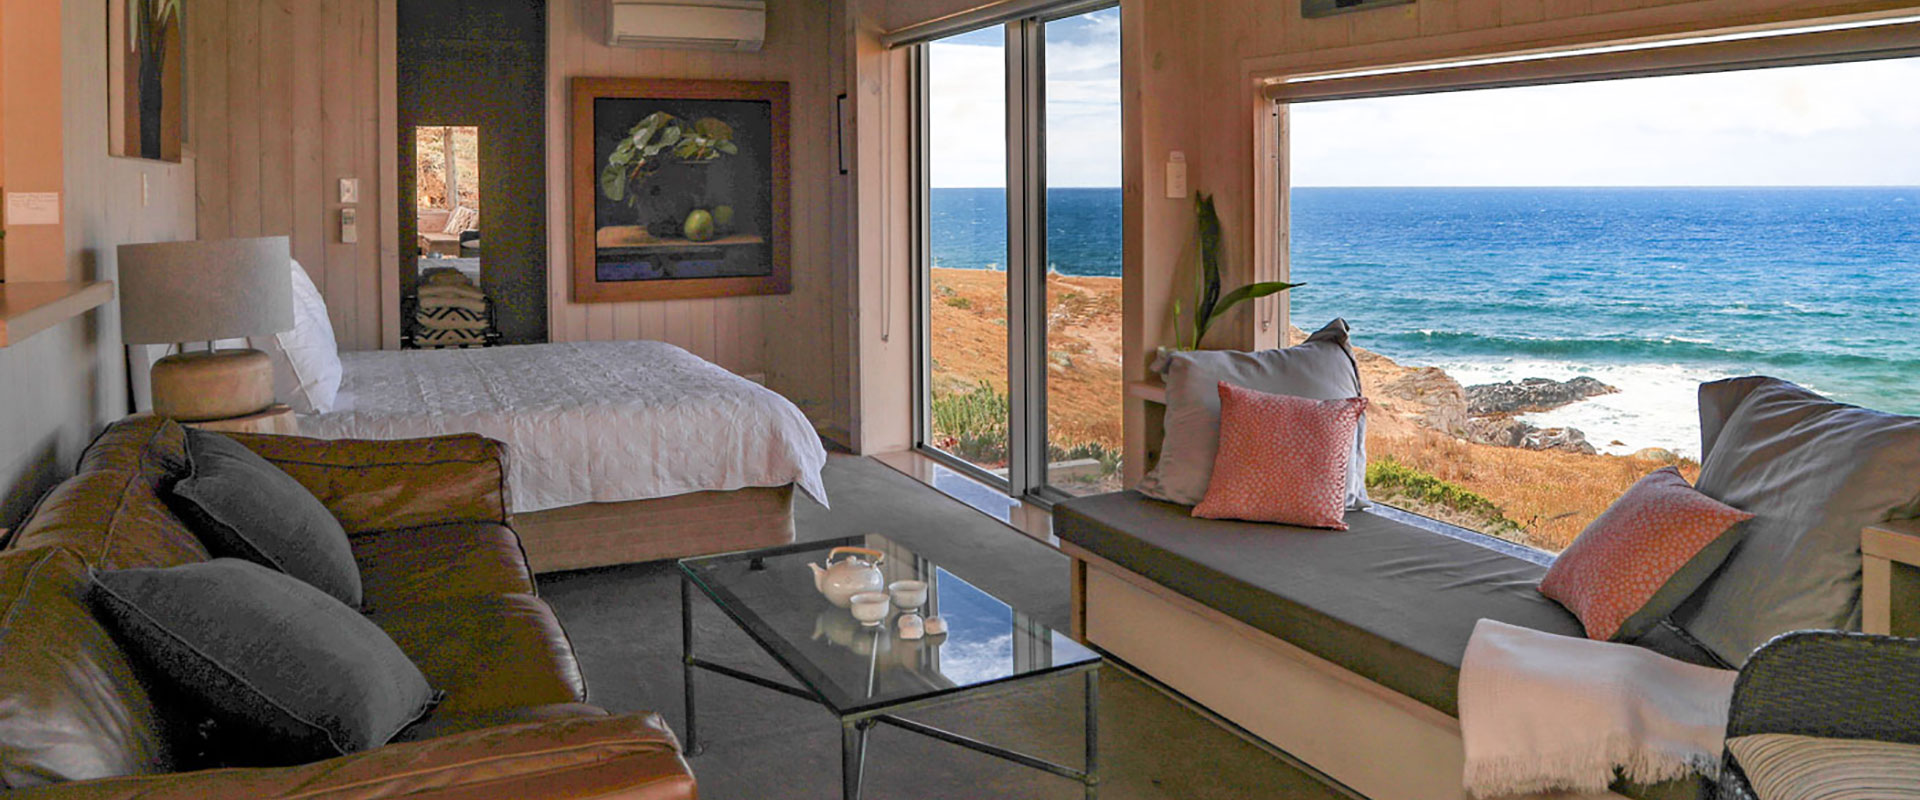 Getting the best ocean view accommodation room